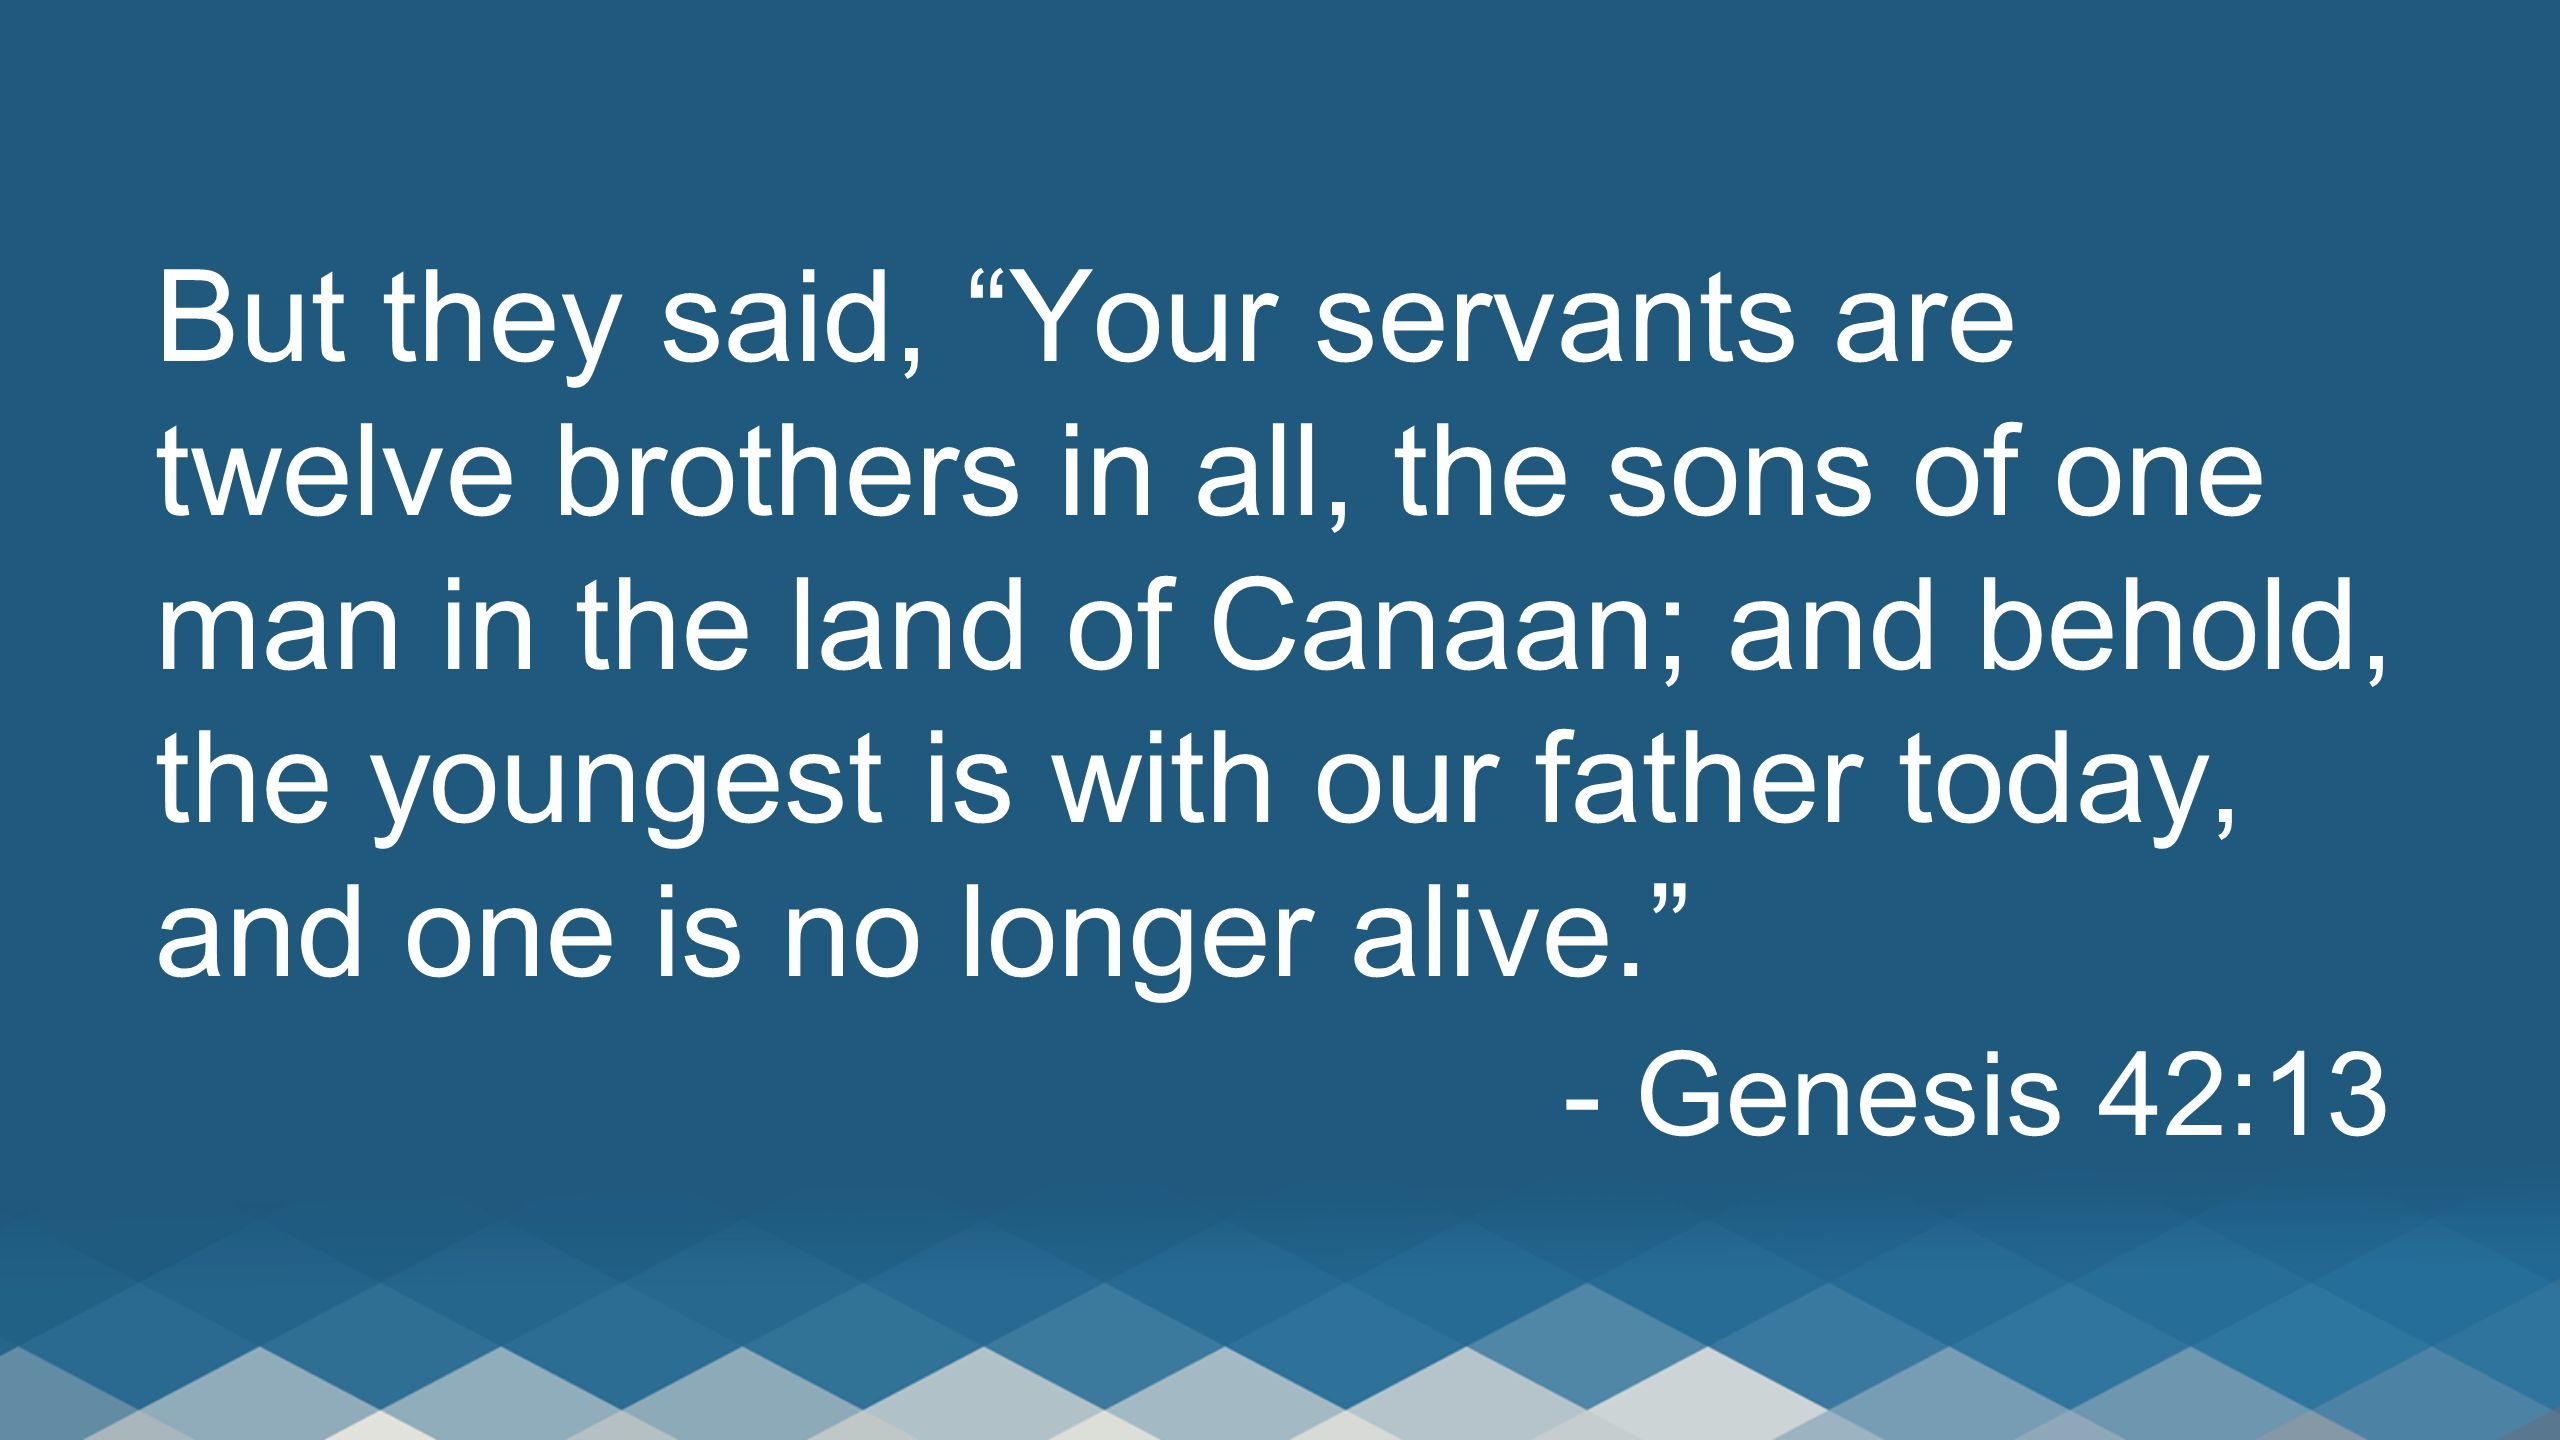 """But they said, """"Your servants are twelve brothers in all, the sons of one man in the land of Canaan; and behold, the youngest is with our father today"""